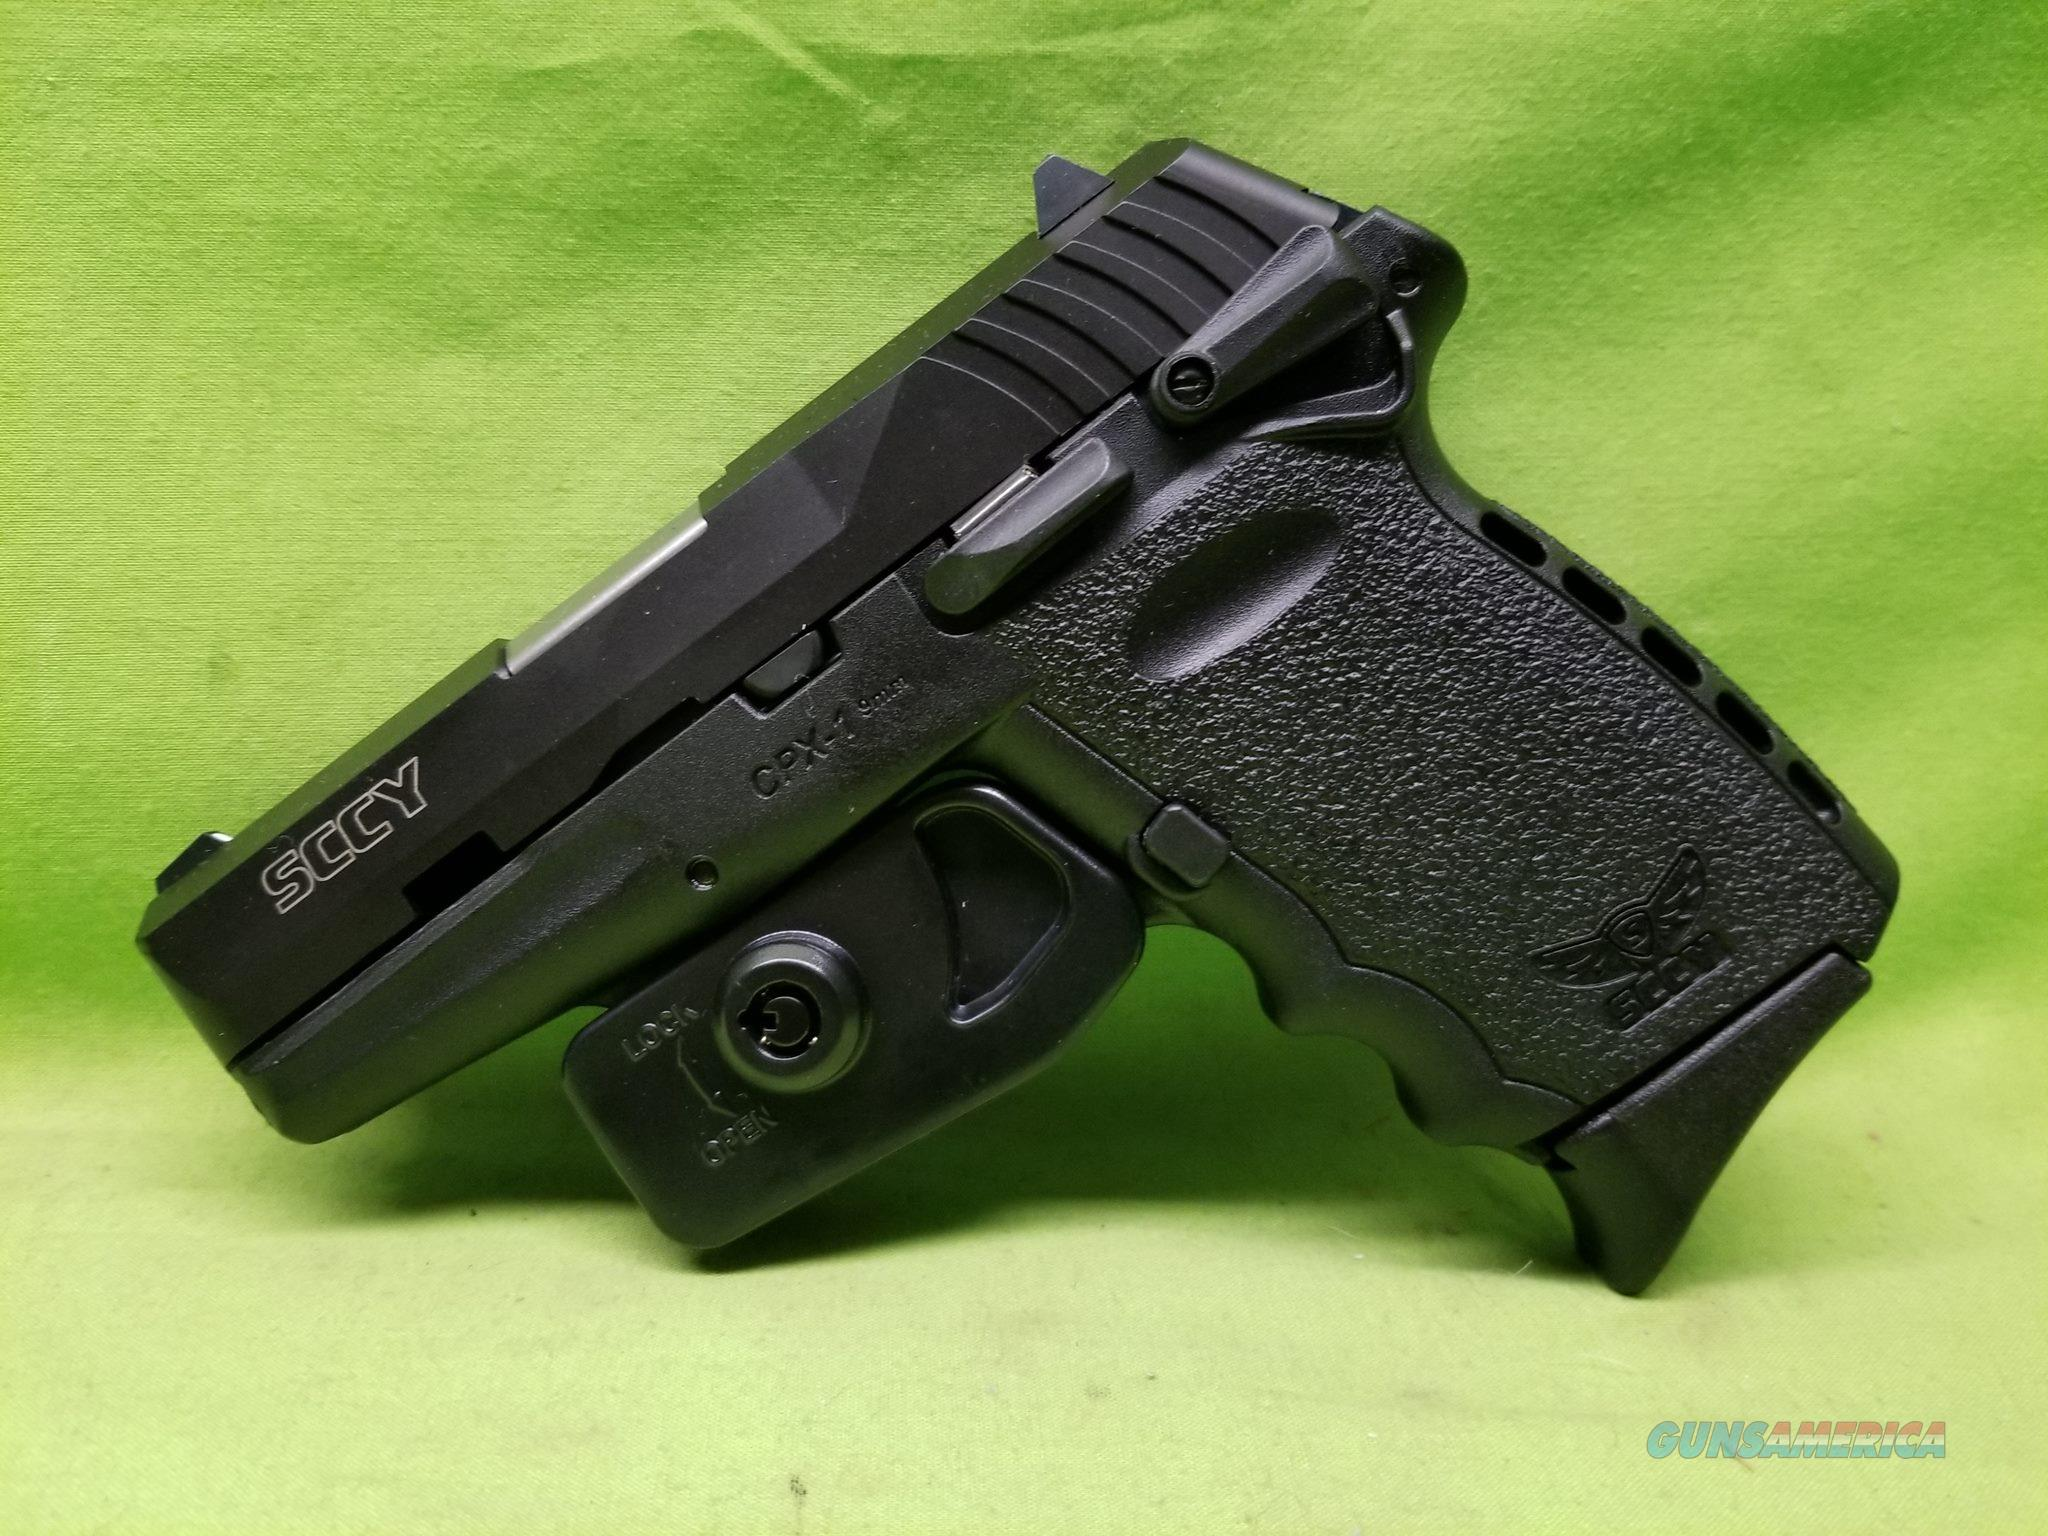 """SCCY CPX-1 CPX 1 CPX1 9 9MM 10RD BLK 3.1"""" SAFETY  Guns > Pistols > SCCY Pistols > CPX1"""